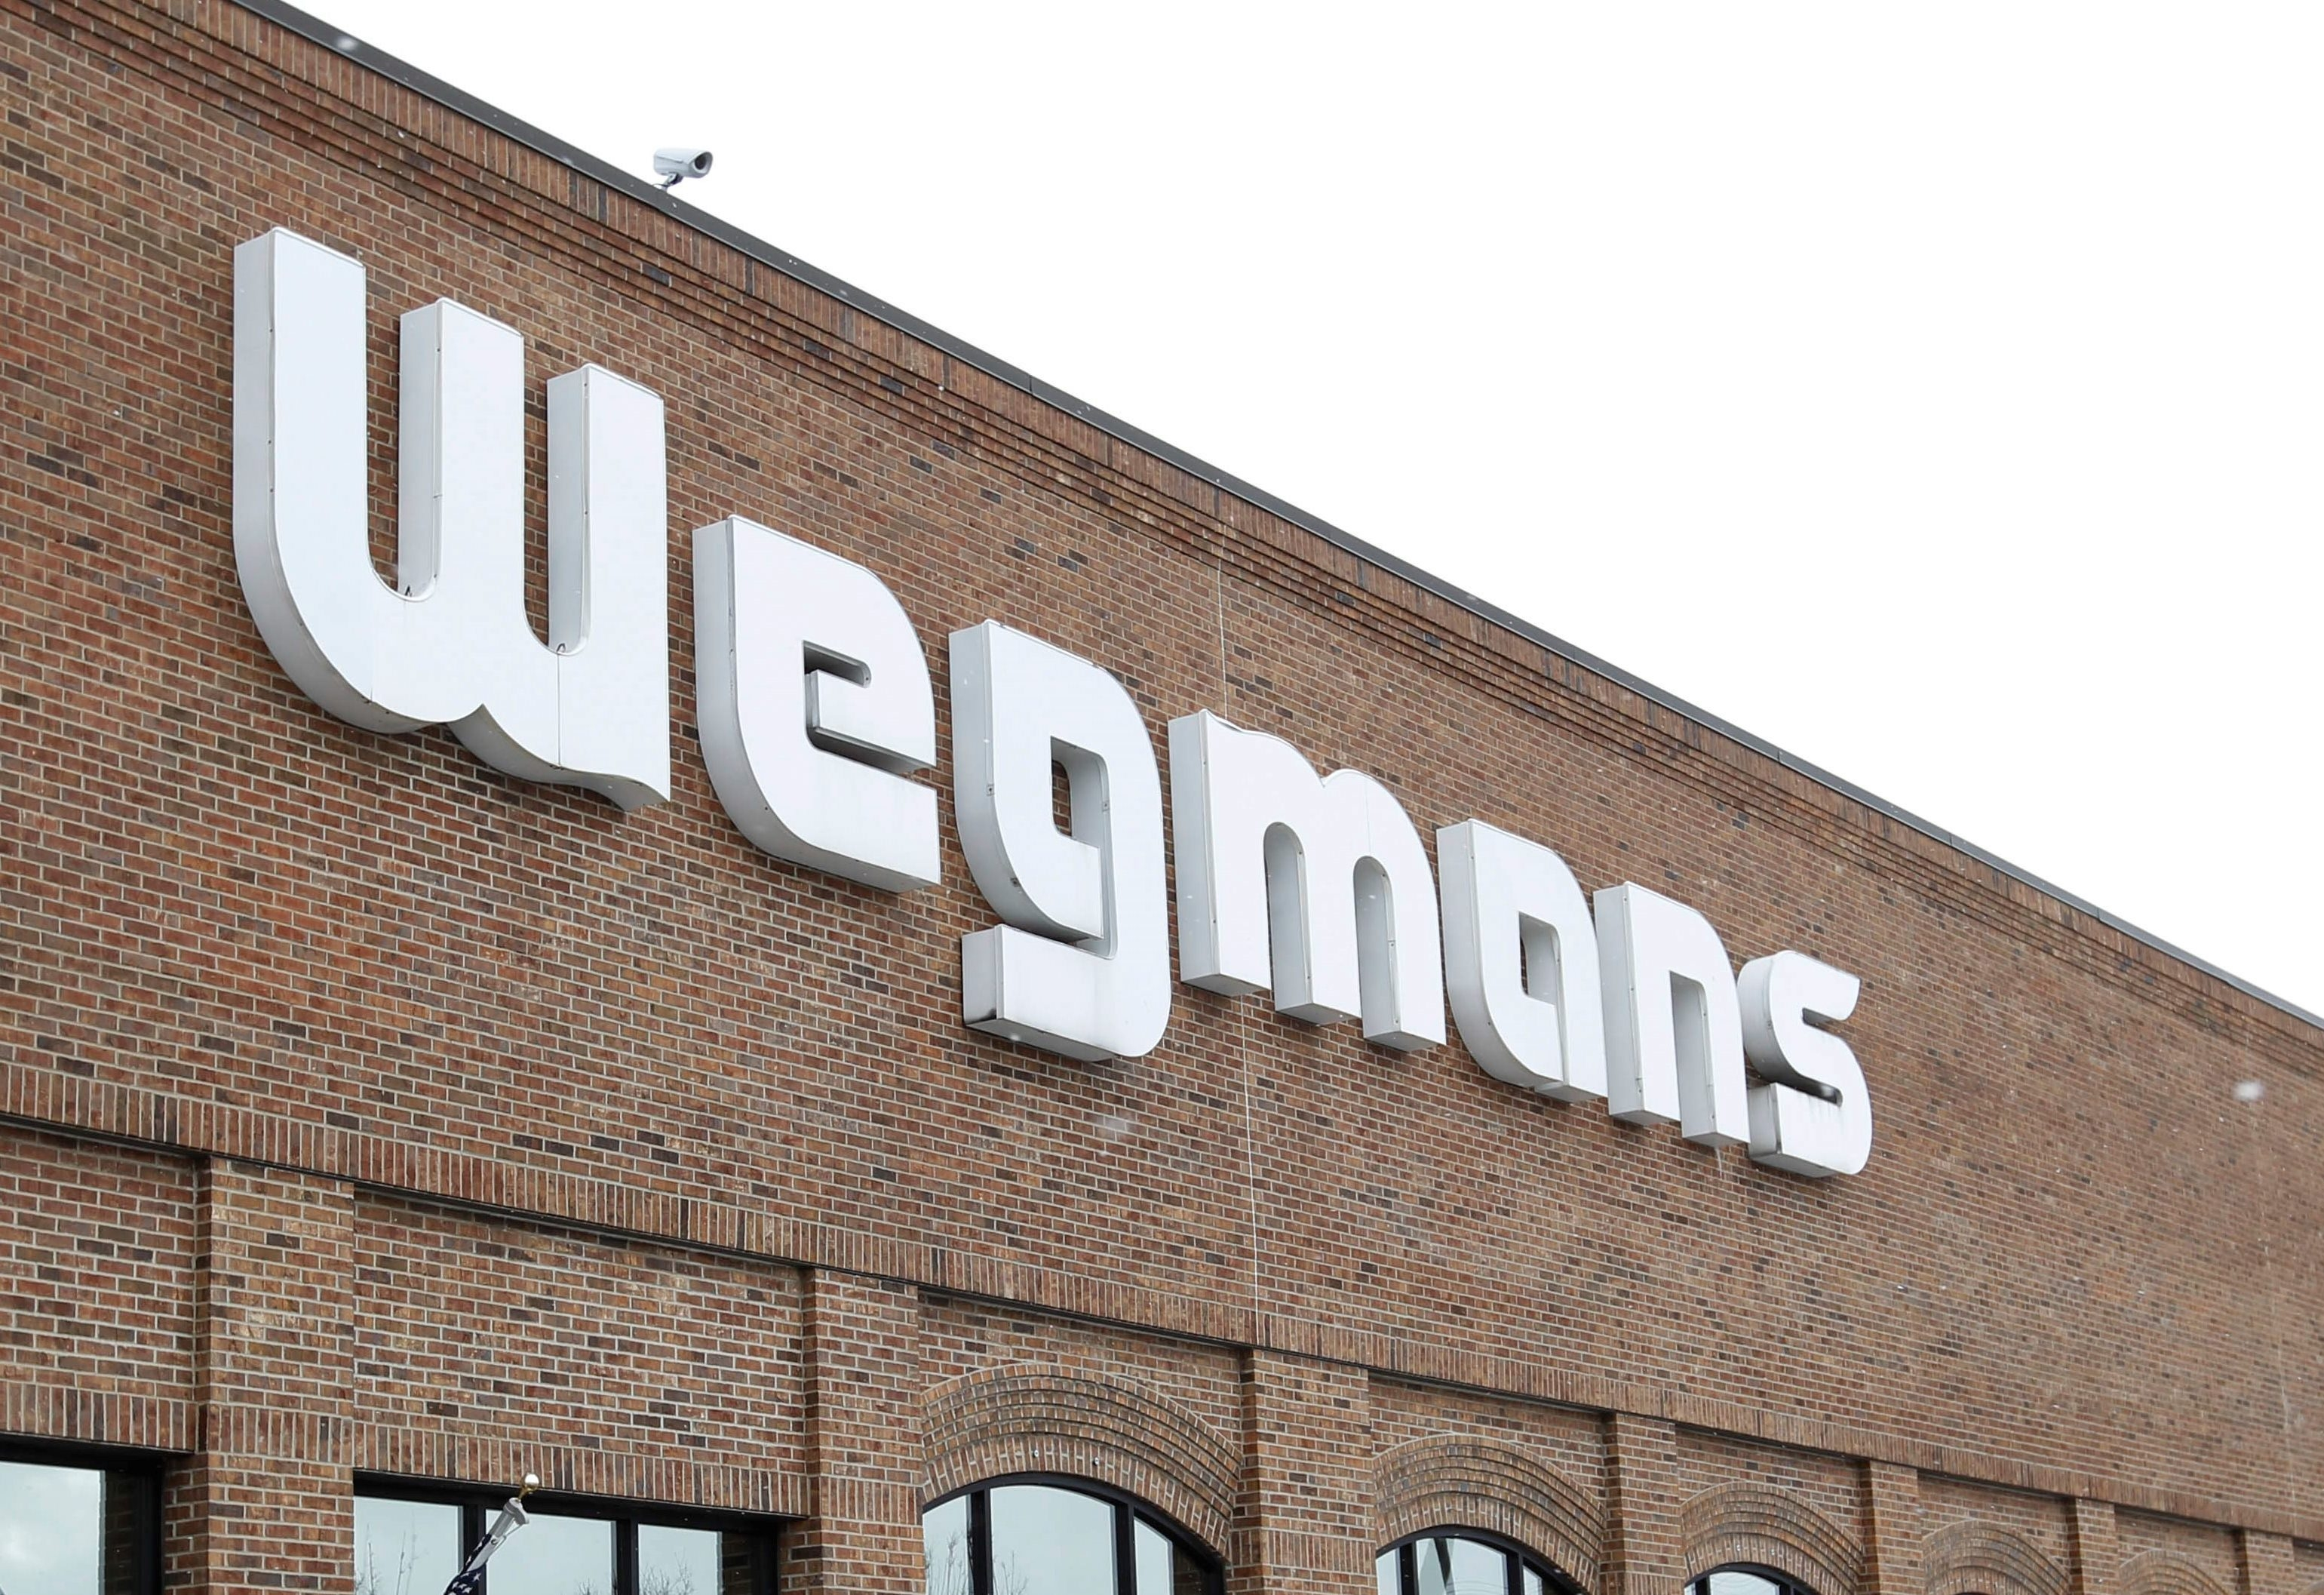 Rochester-based grocer Wegmans will open Wegmans Wonderplace in the new Innovation Wing at the Smithsonian's National Museum of American History on Wednesday. (Sharon Cantillon/News file photo)